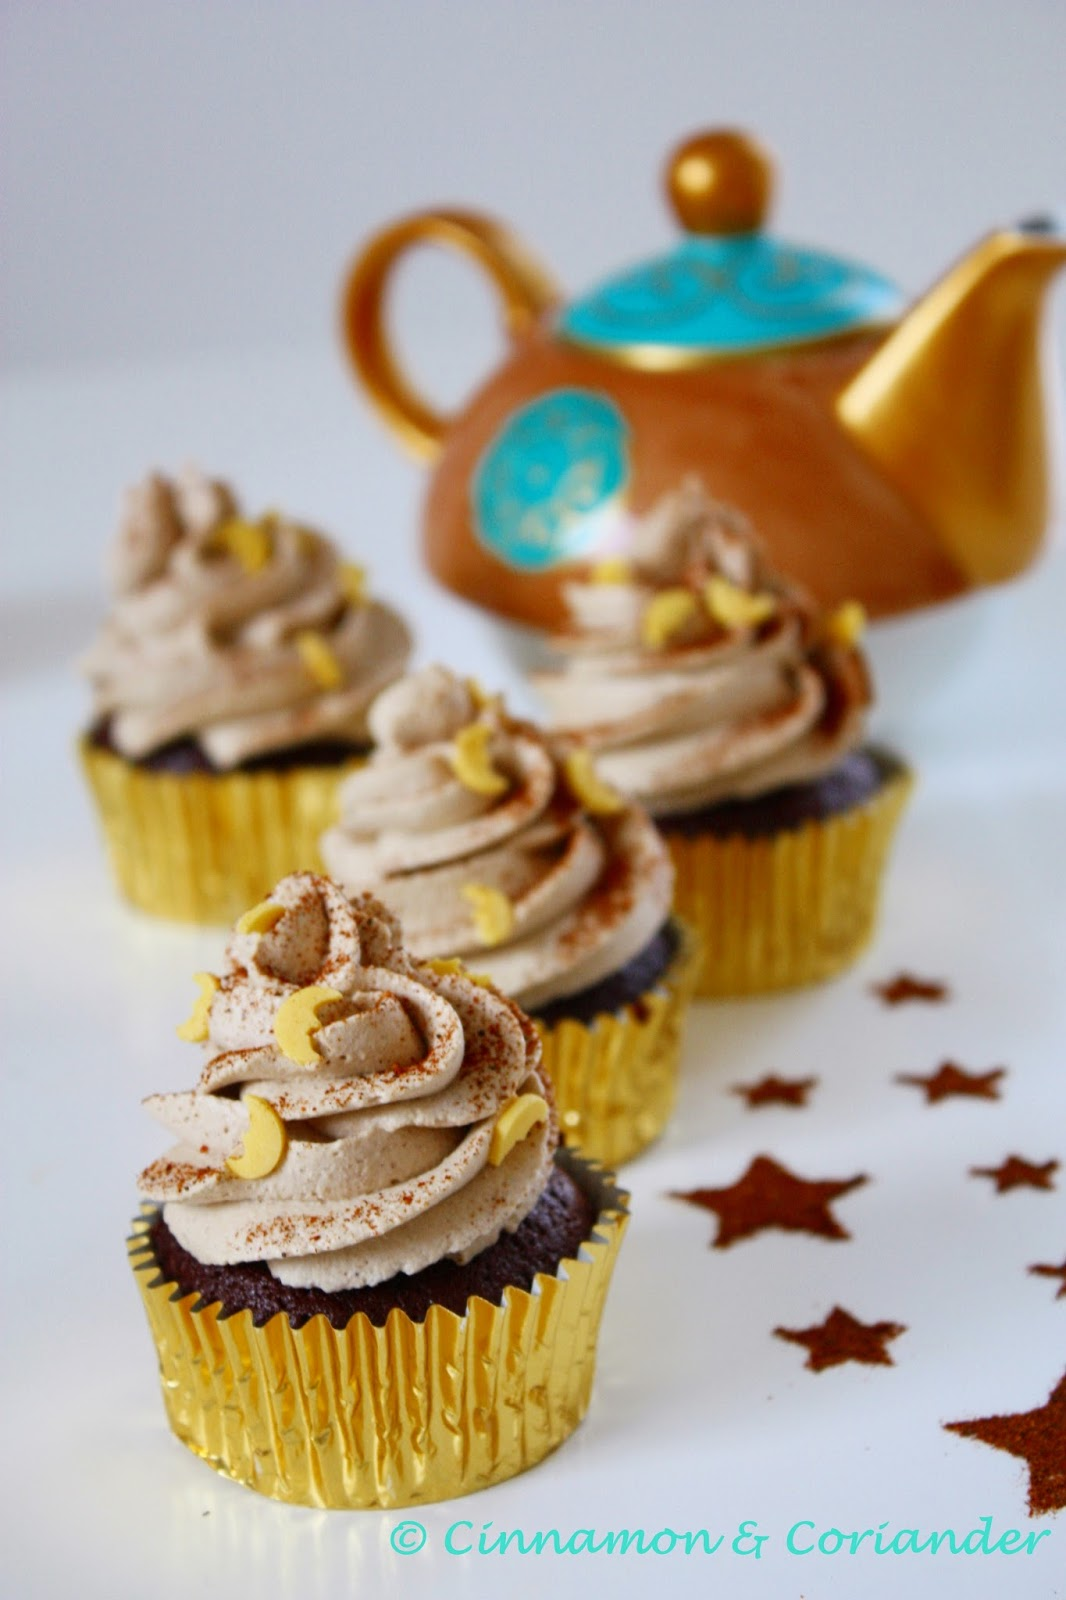 Arabische Mocca Cupcakes mit Cream Cheese Frosting